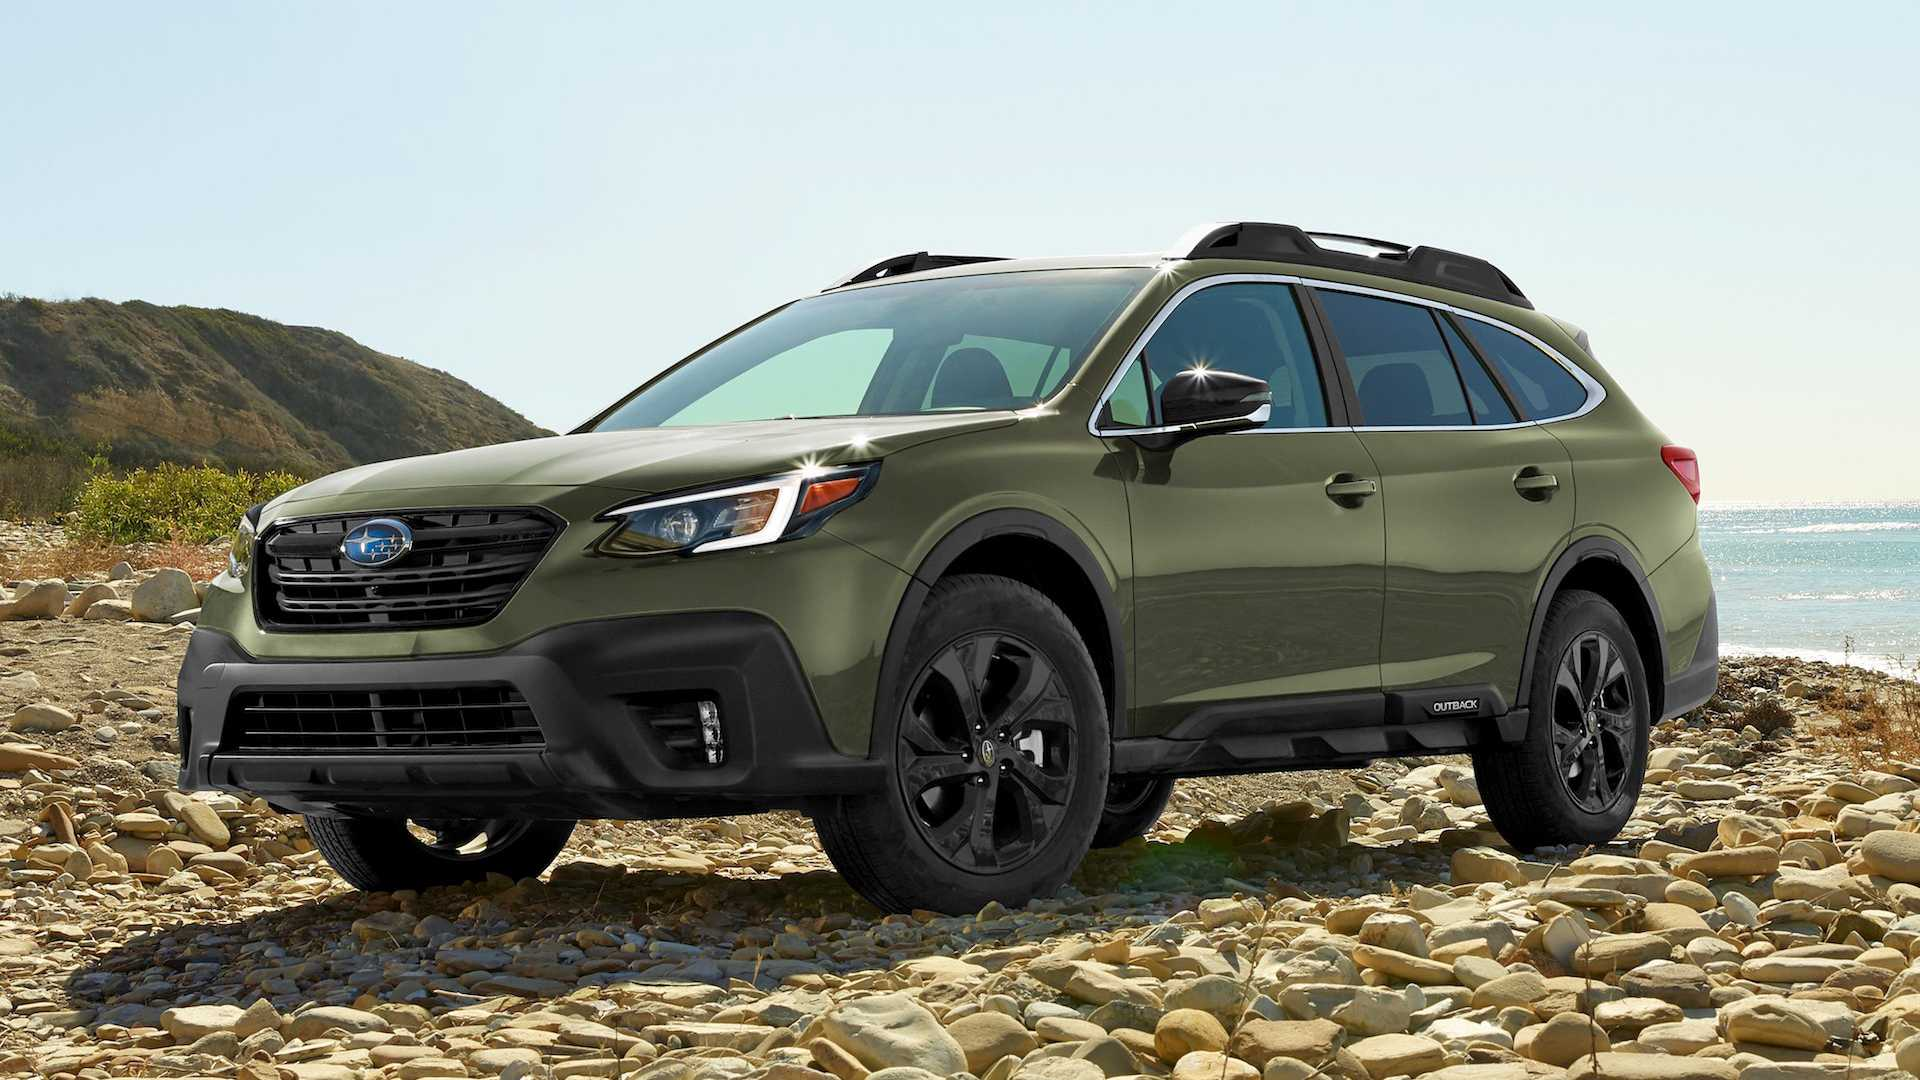 82 The 2020 Subaru Outback Turbo Performance And New Engine